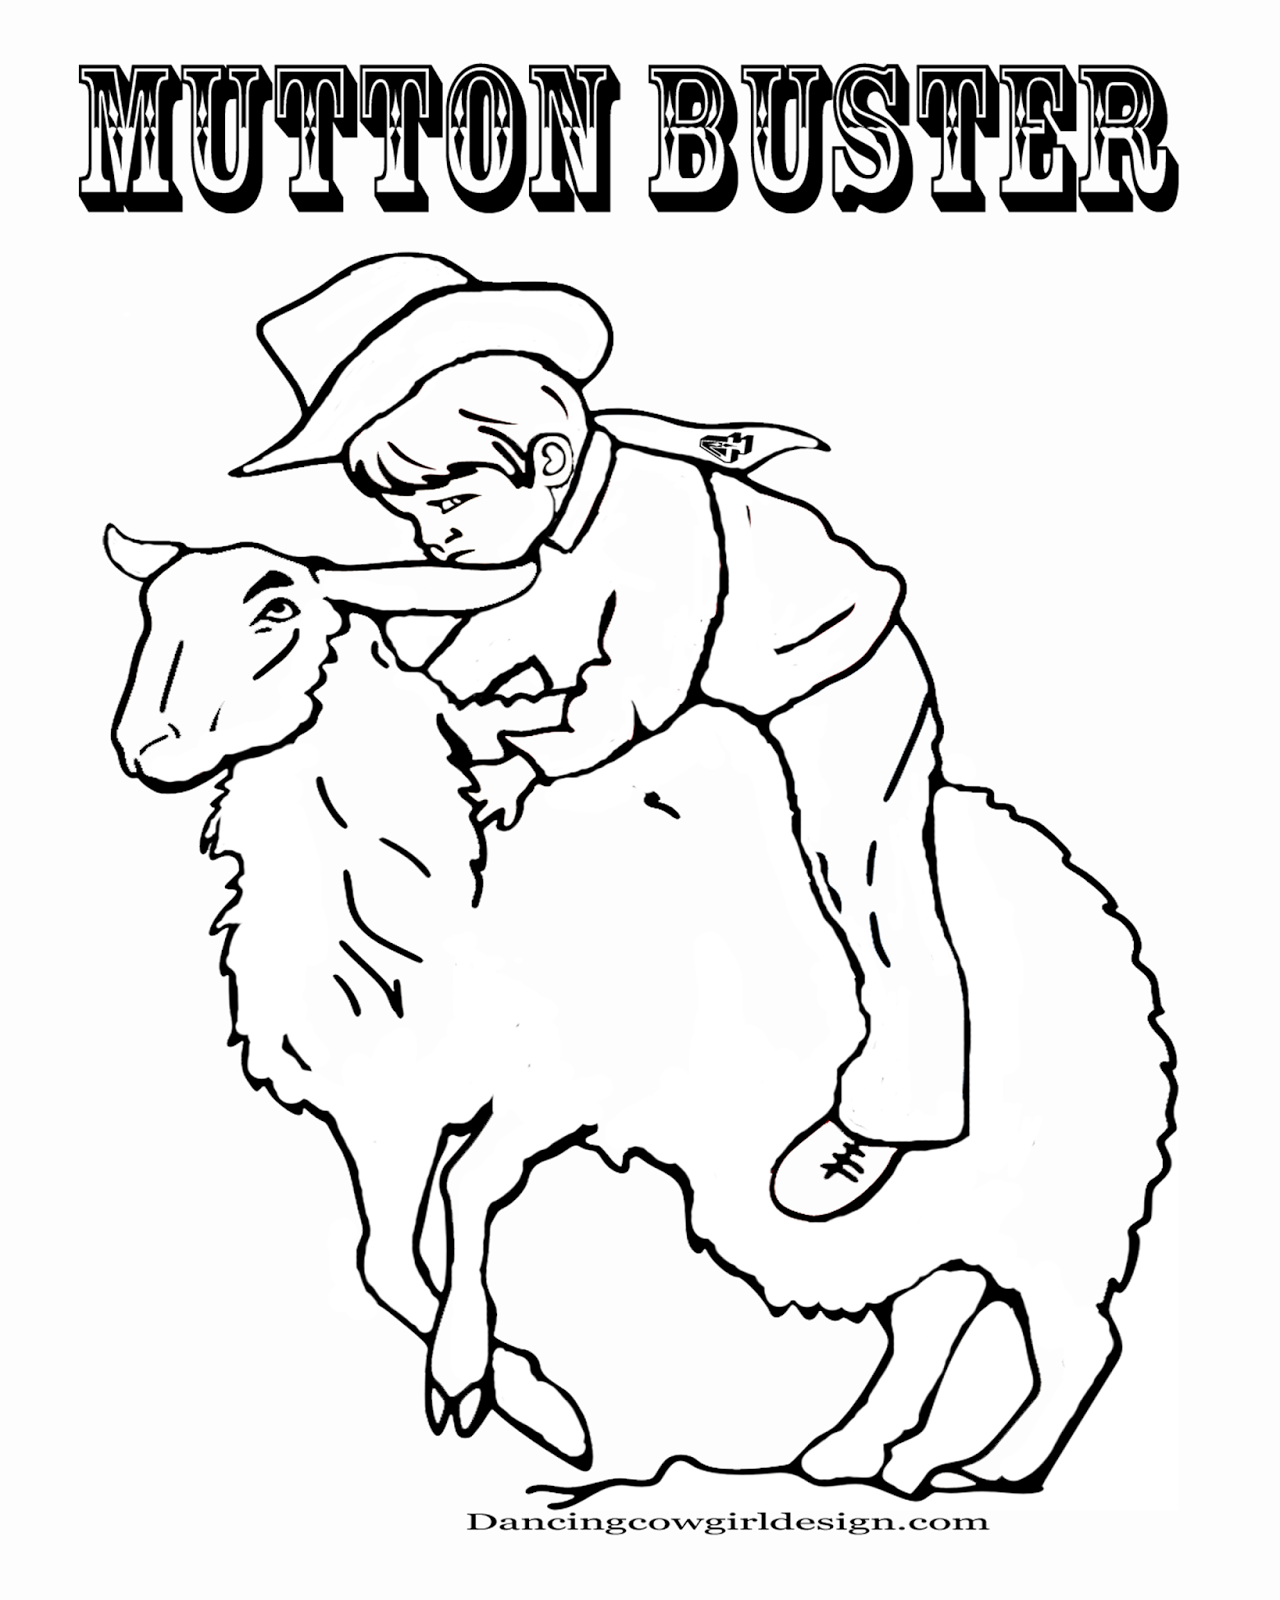 kid rodeo coloring pages - photo#20